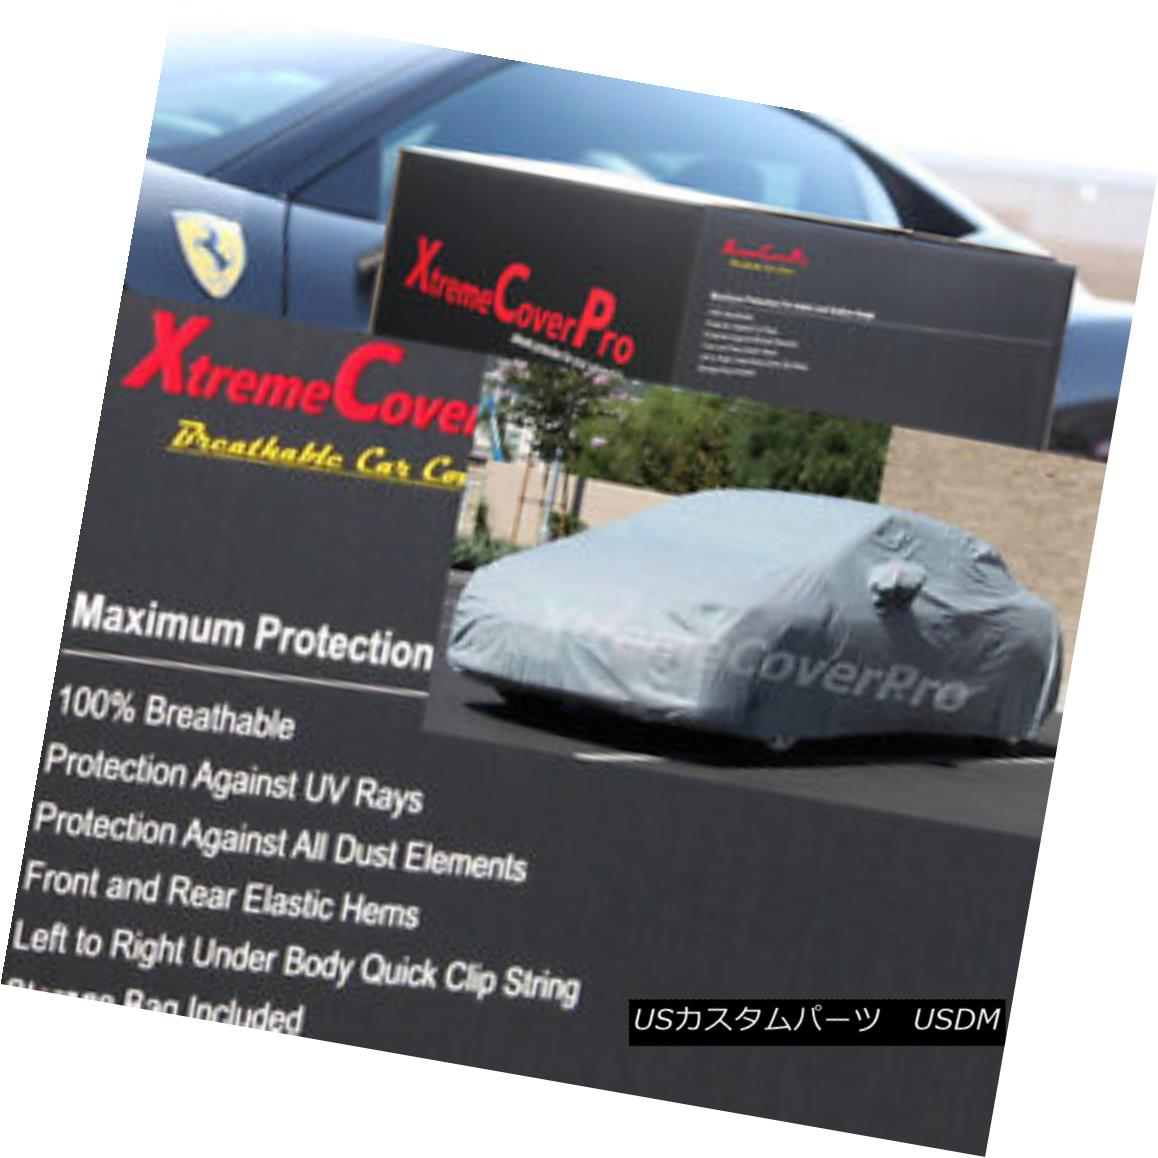 カーカバー 2013 Porsche 911 Carrera S 4S Turbo Coupe Breathable Car Cover w/MirrorPocket 2013ポルシェ911カレラS 4Sターボクーペ通気性車カバー付きMirrorPocket